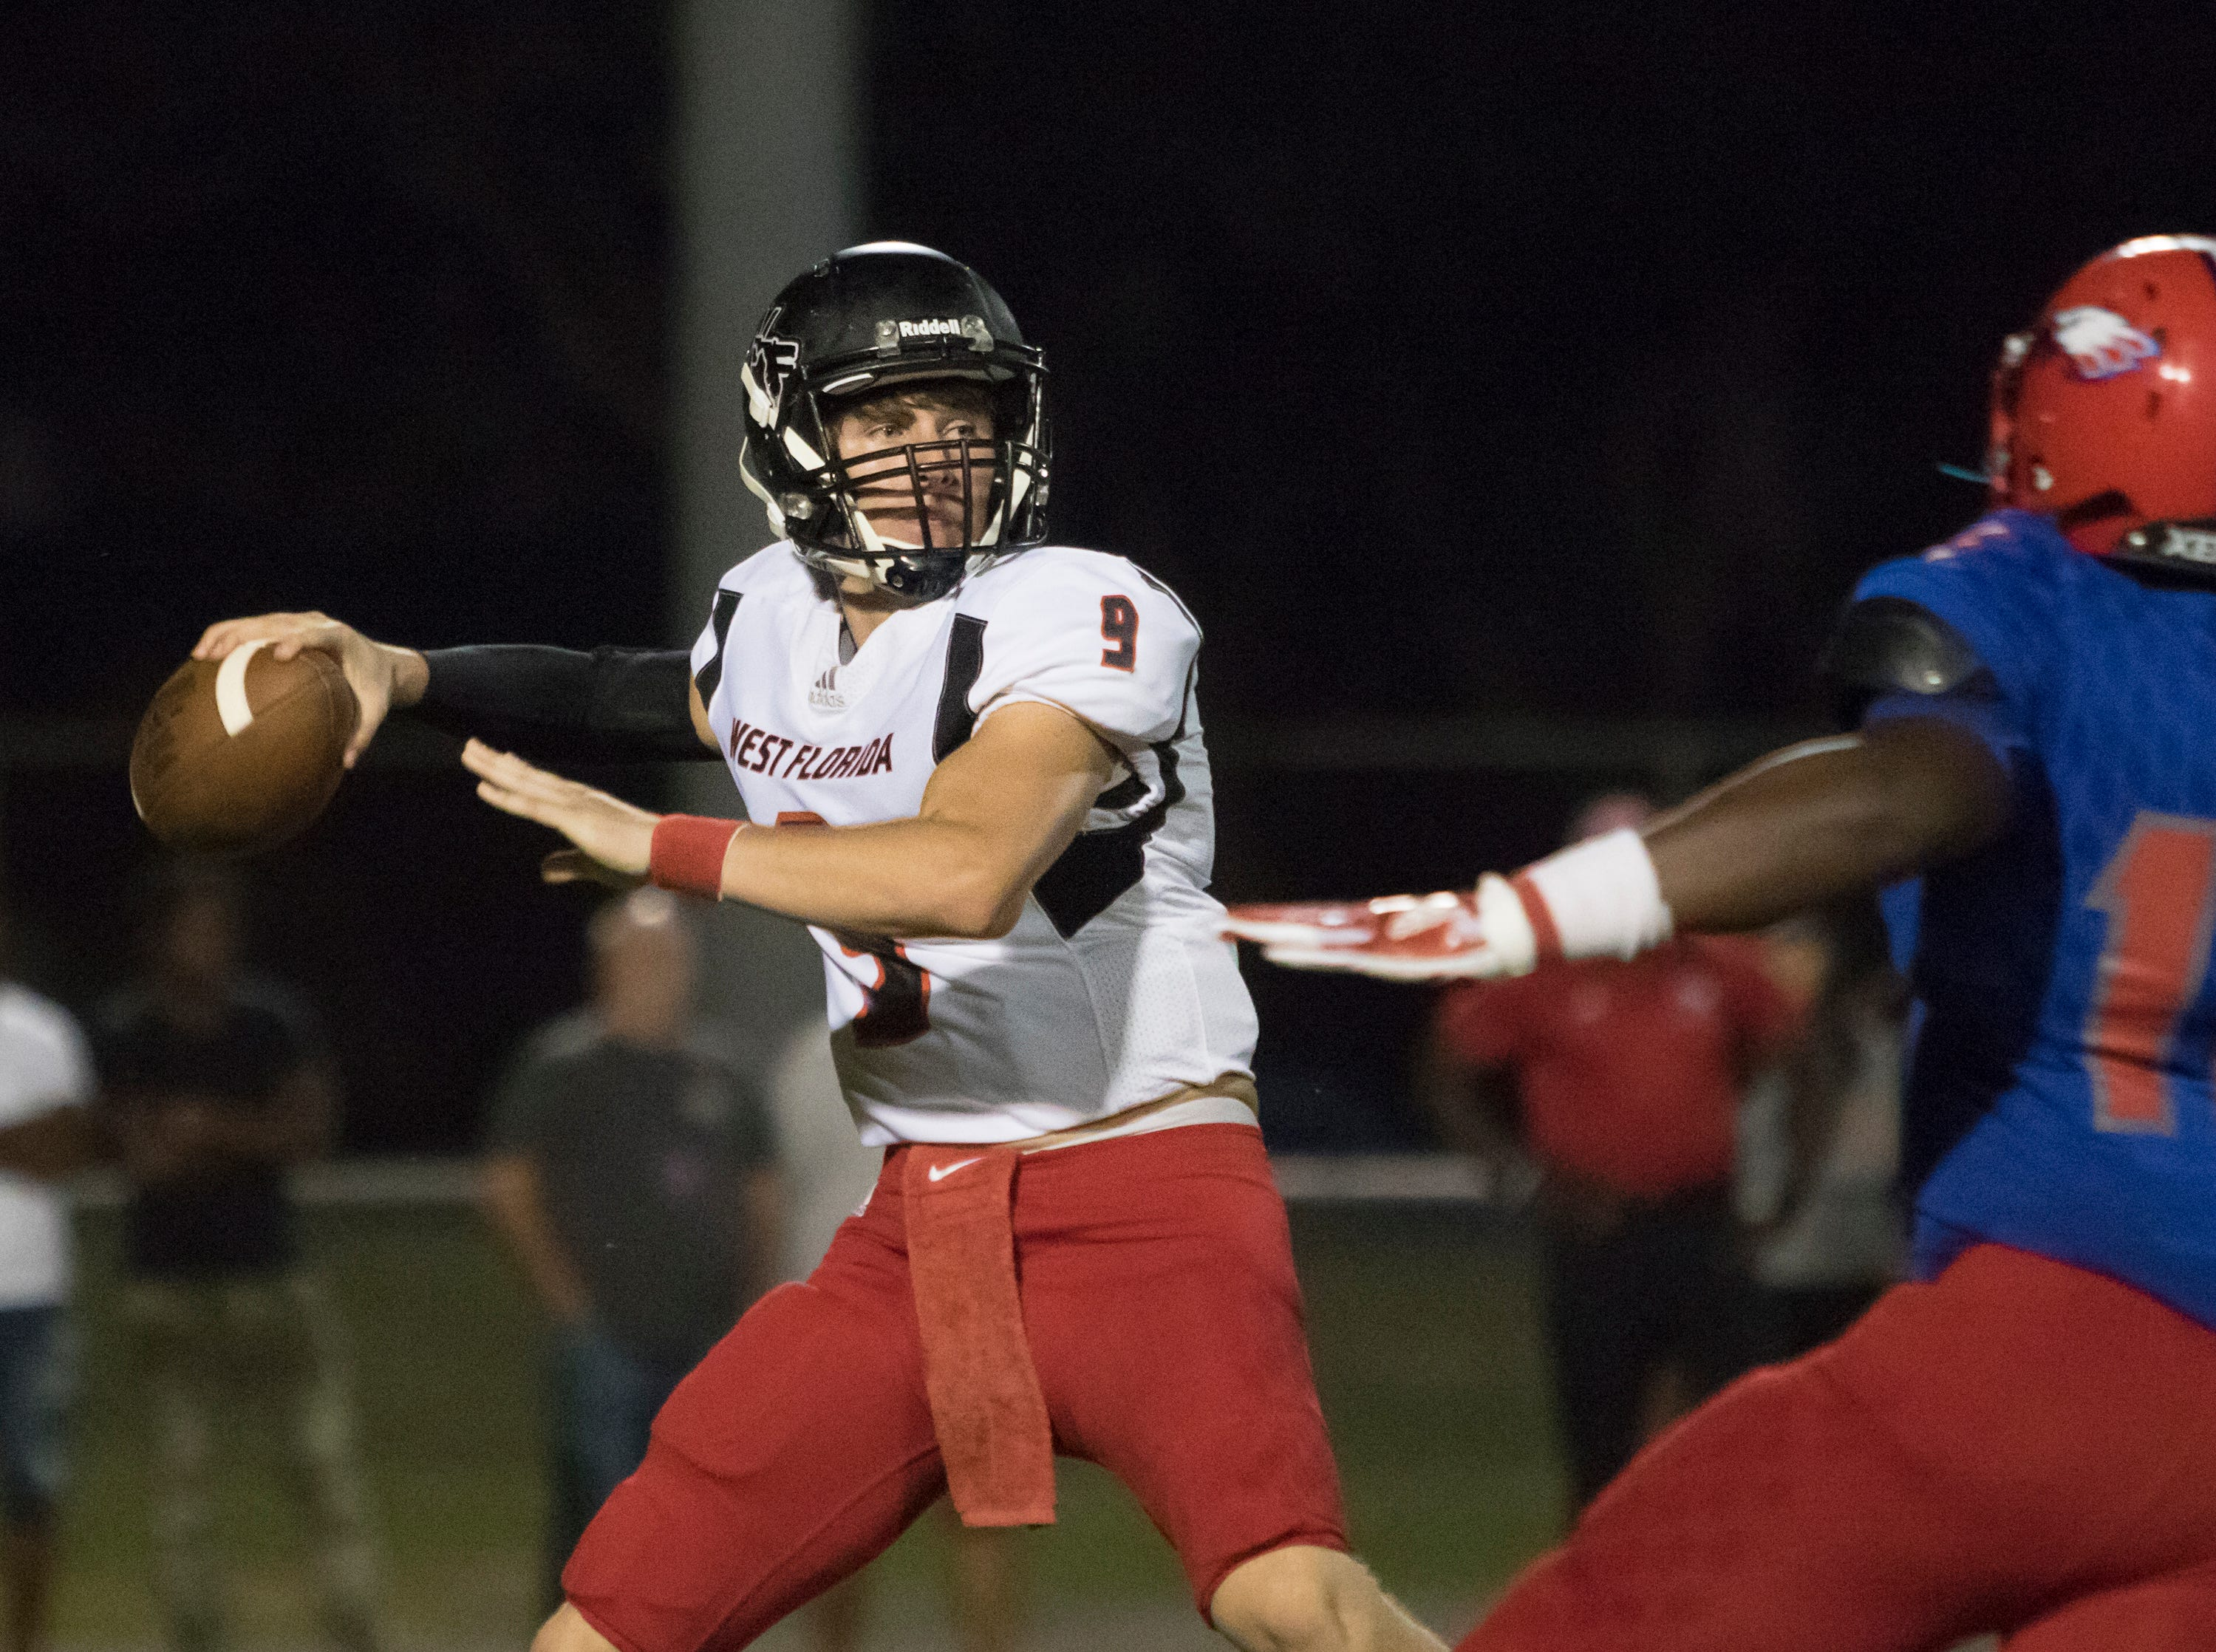 Quarterback Trevor Jordan (9) gets set to pass during the West Florida vs Pine Forest football game at Pine Forest High School in Pensacola on Friday, October 5, 2018.